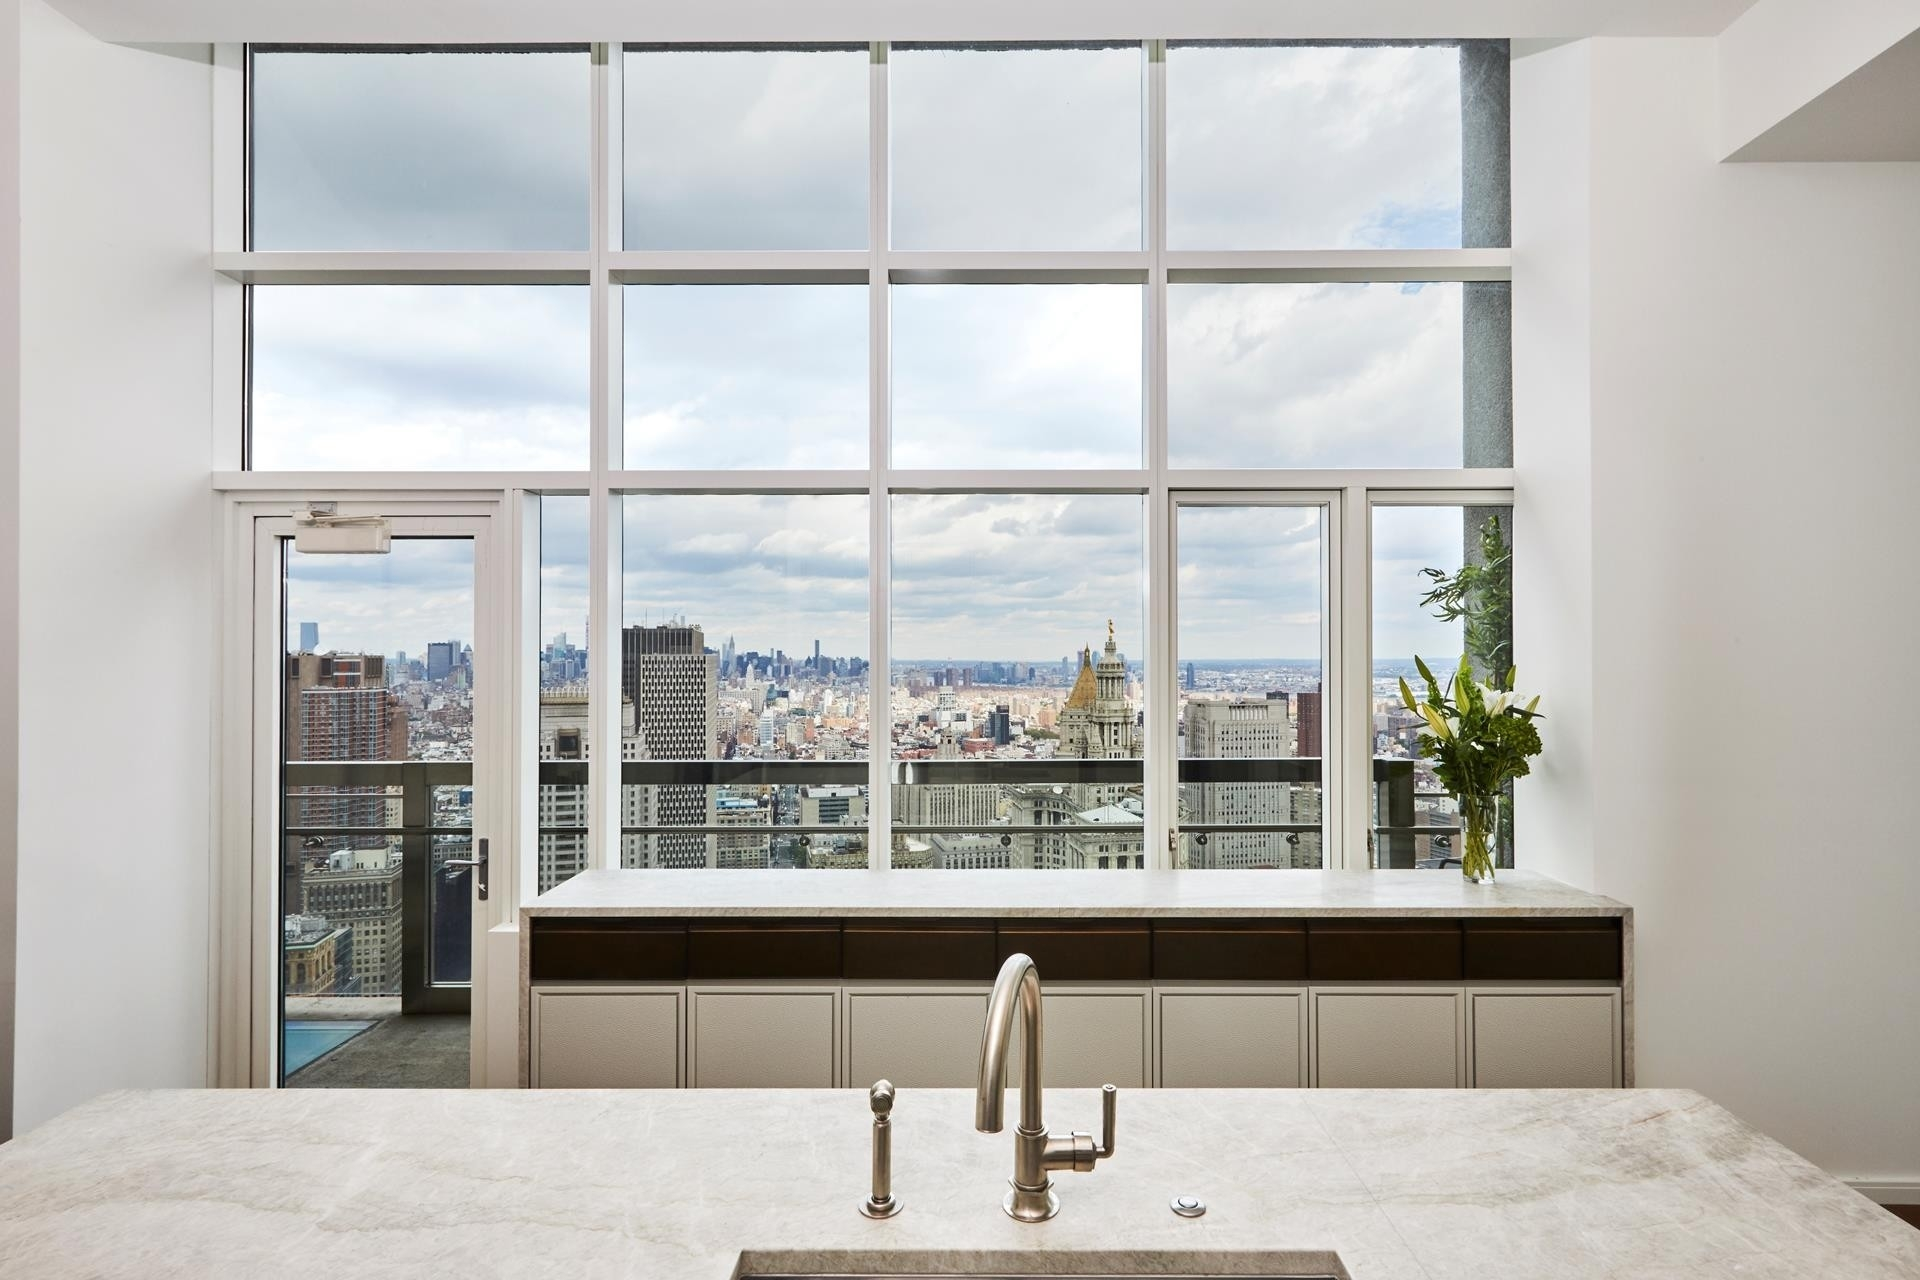 4. Condominiums for Sale at The Beekman Residences, 5 Beekman St, PH Financial District, New York, NY 10038